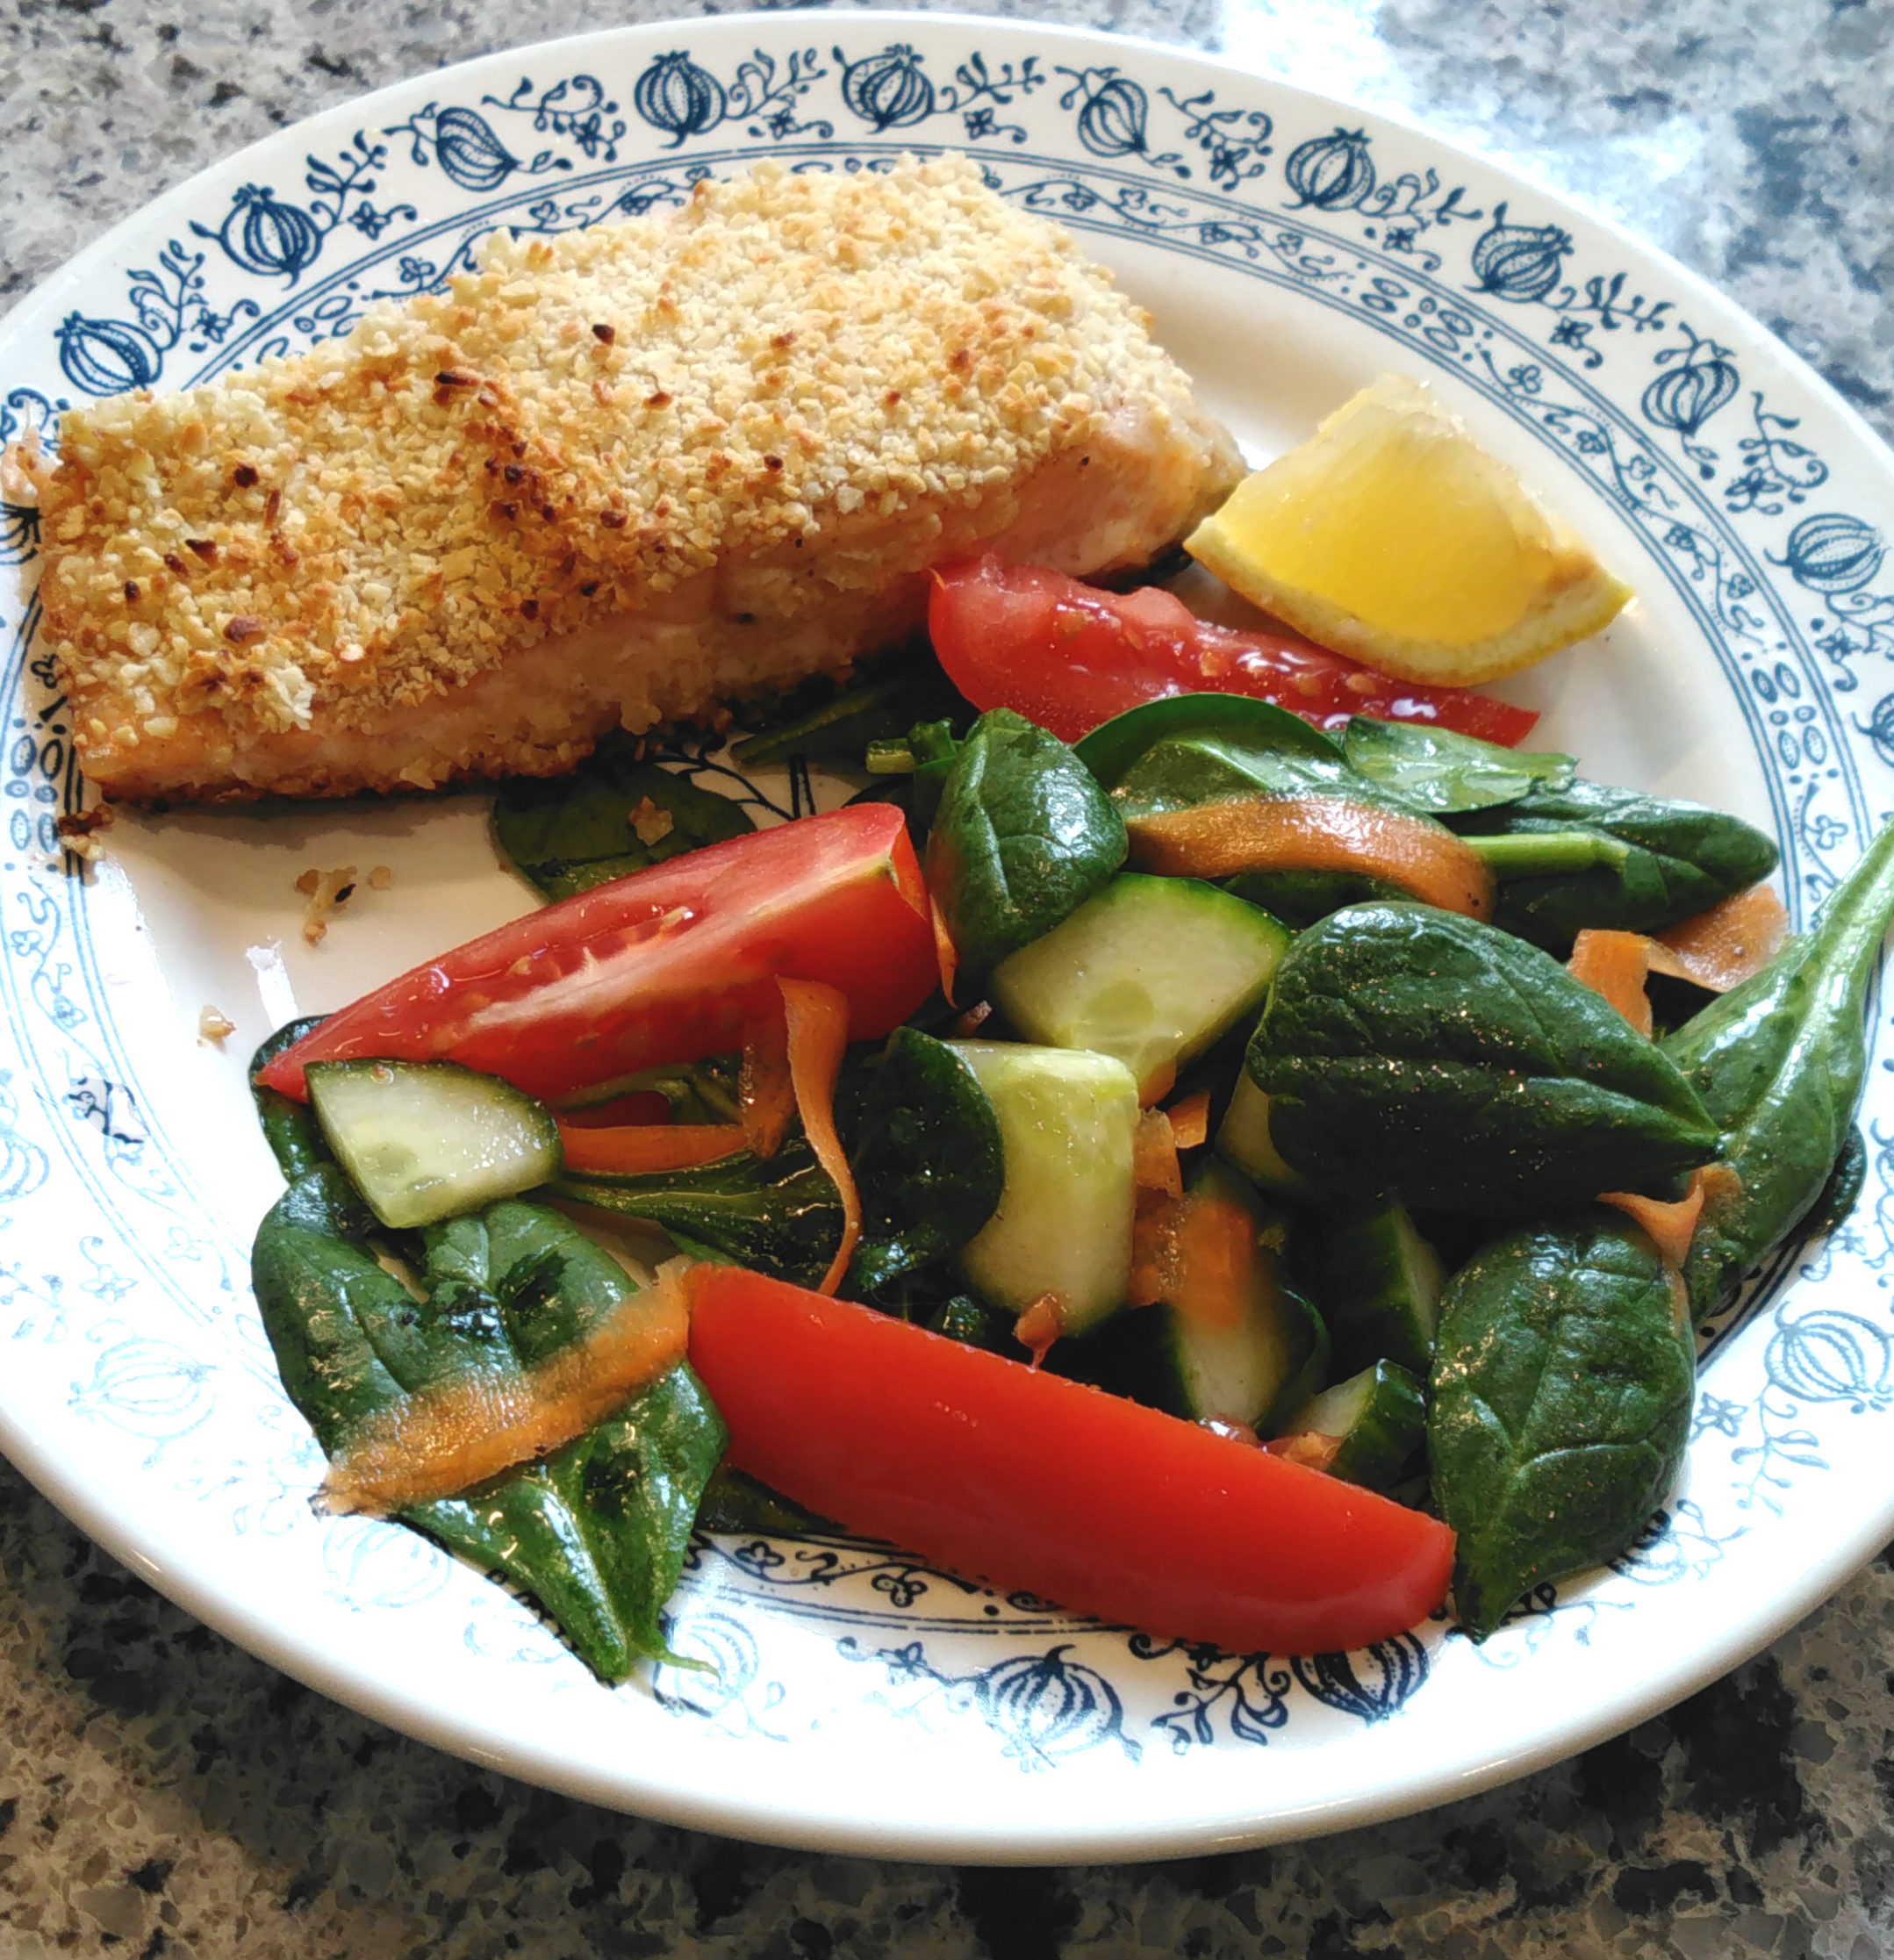 This baked salmon recipe has a baby spinach and cherry tomato side salad built right in. It makes a quick and easy weeknight dish for four.